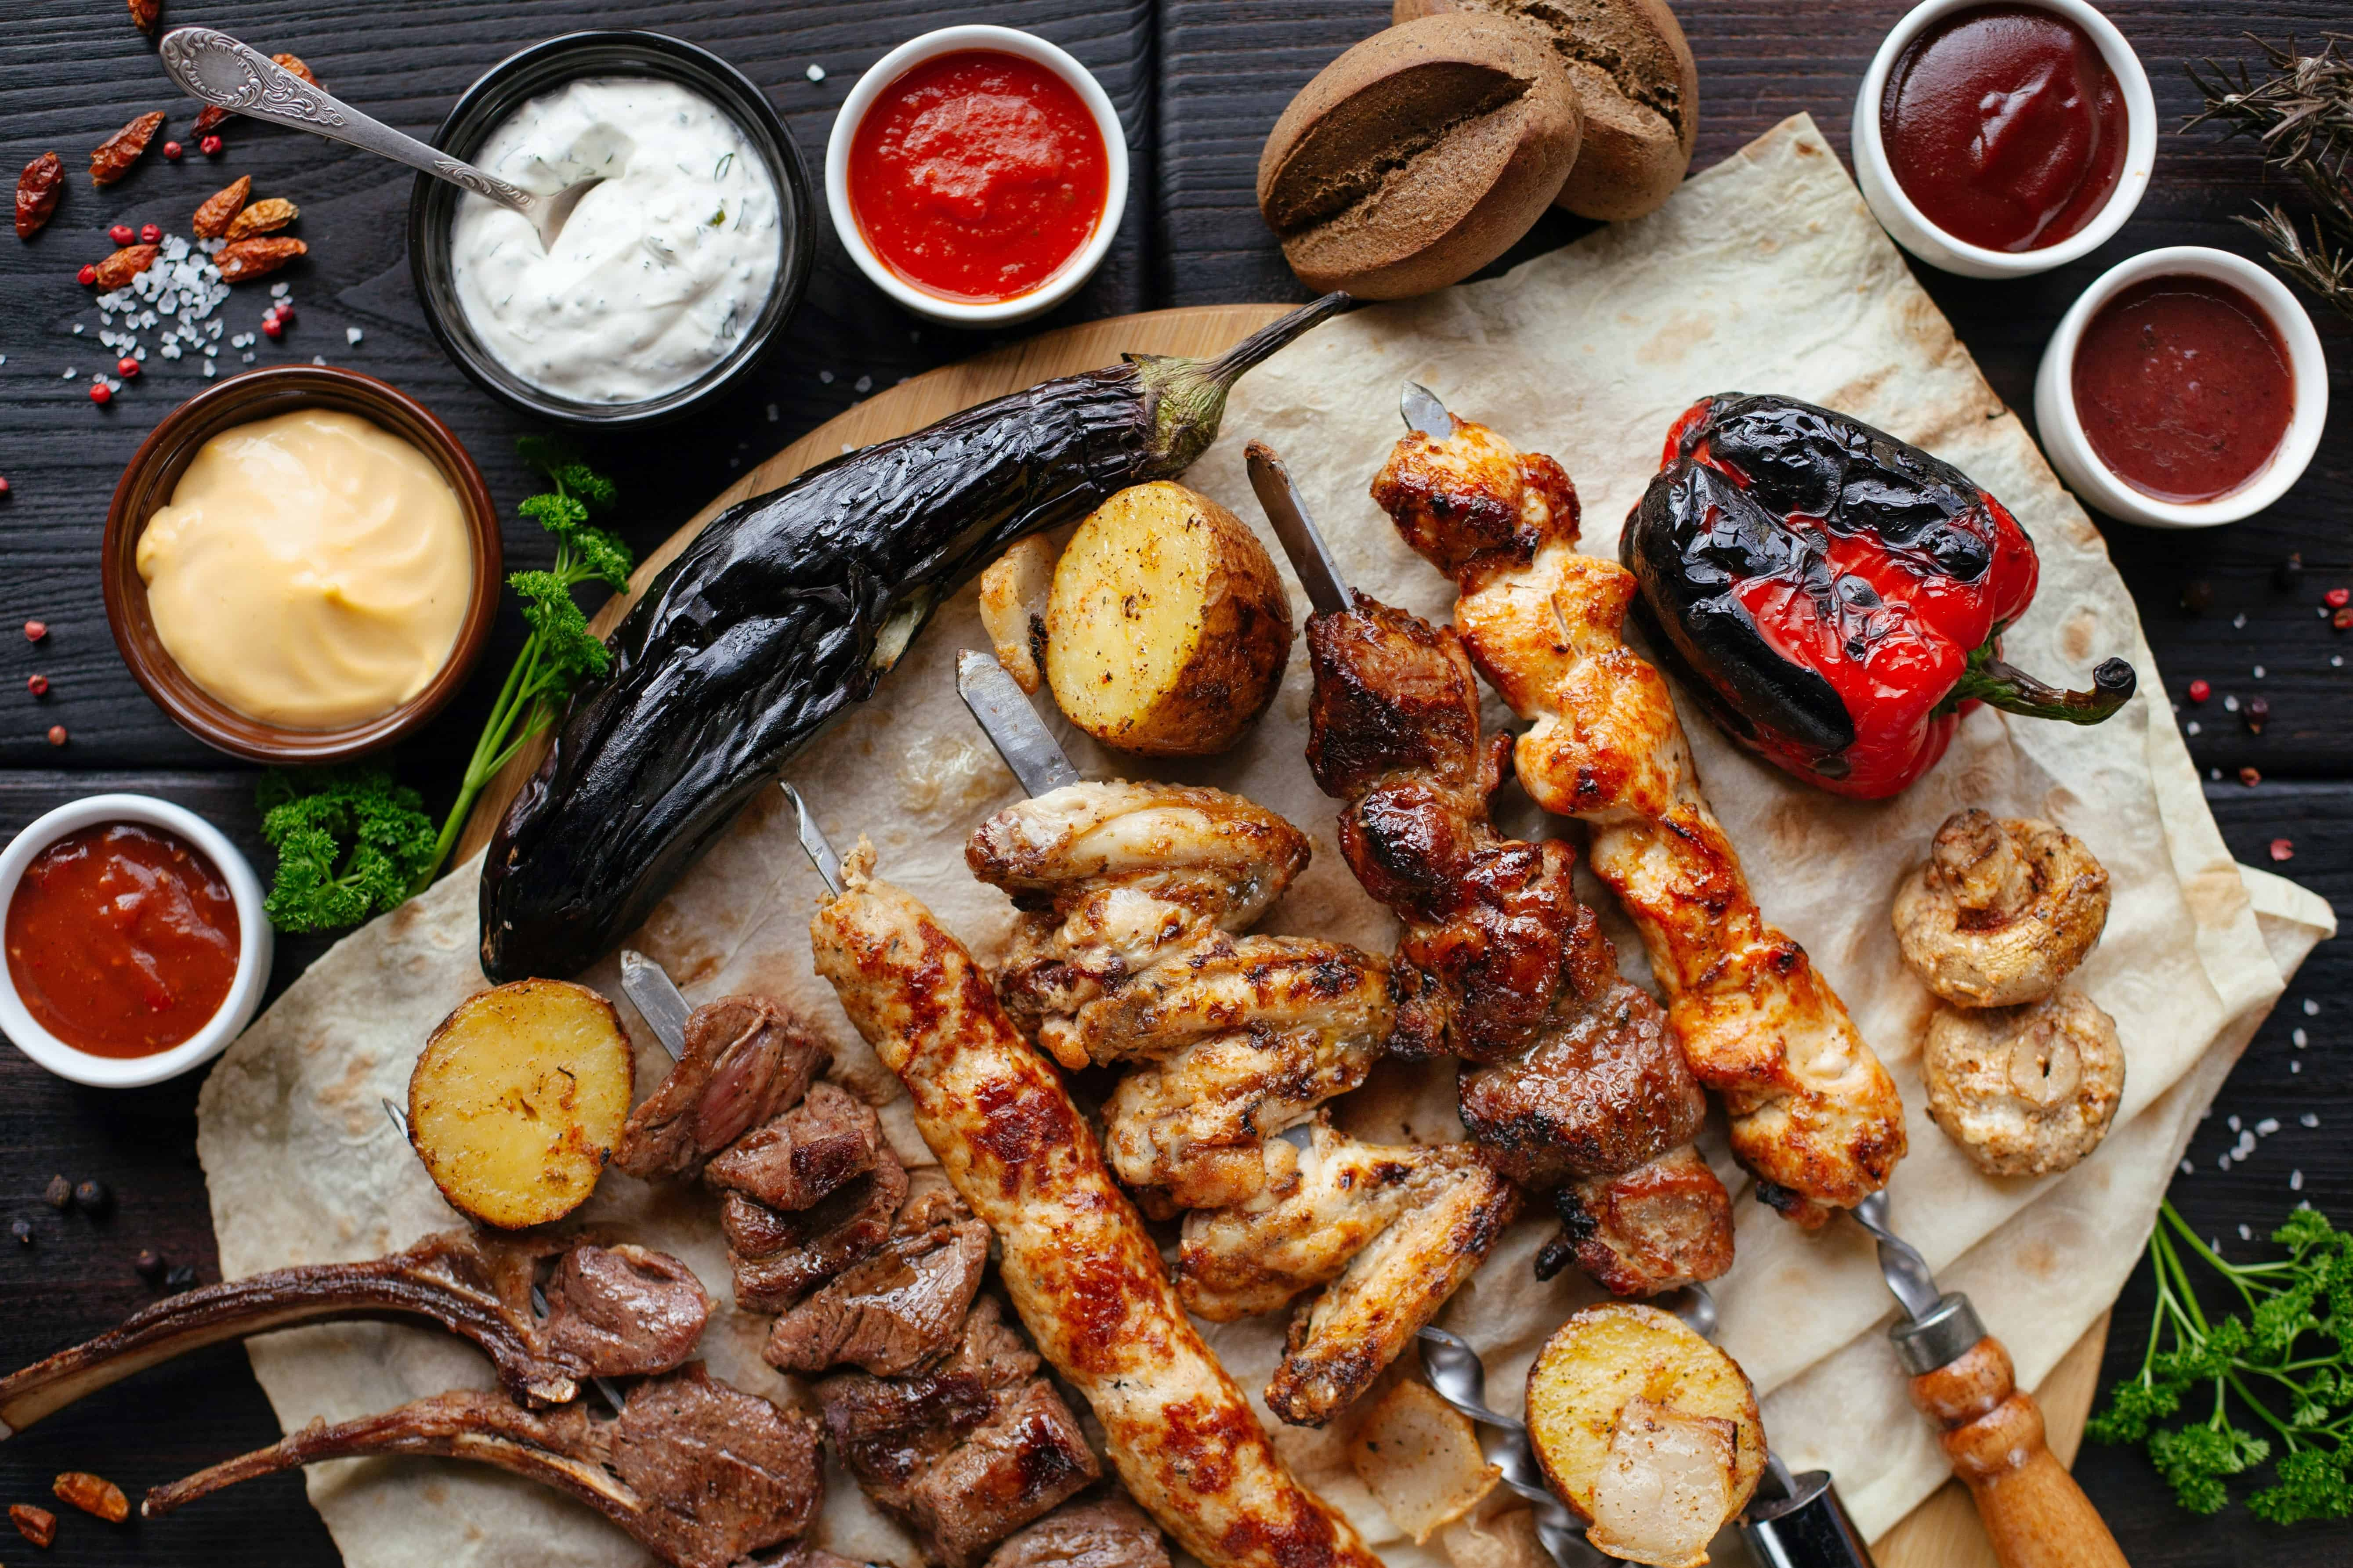 bbq skewers, vegetables and condiments on a table